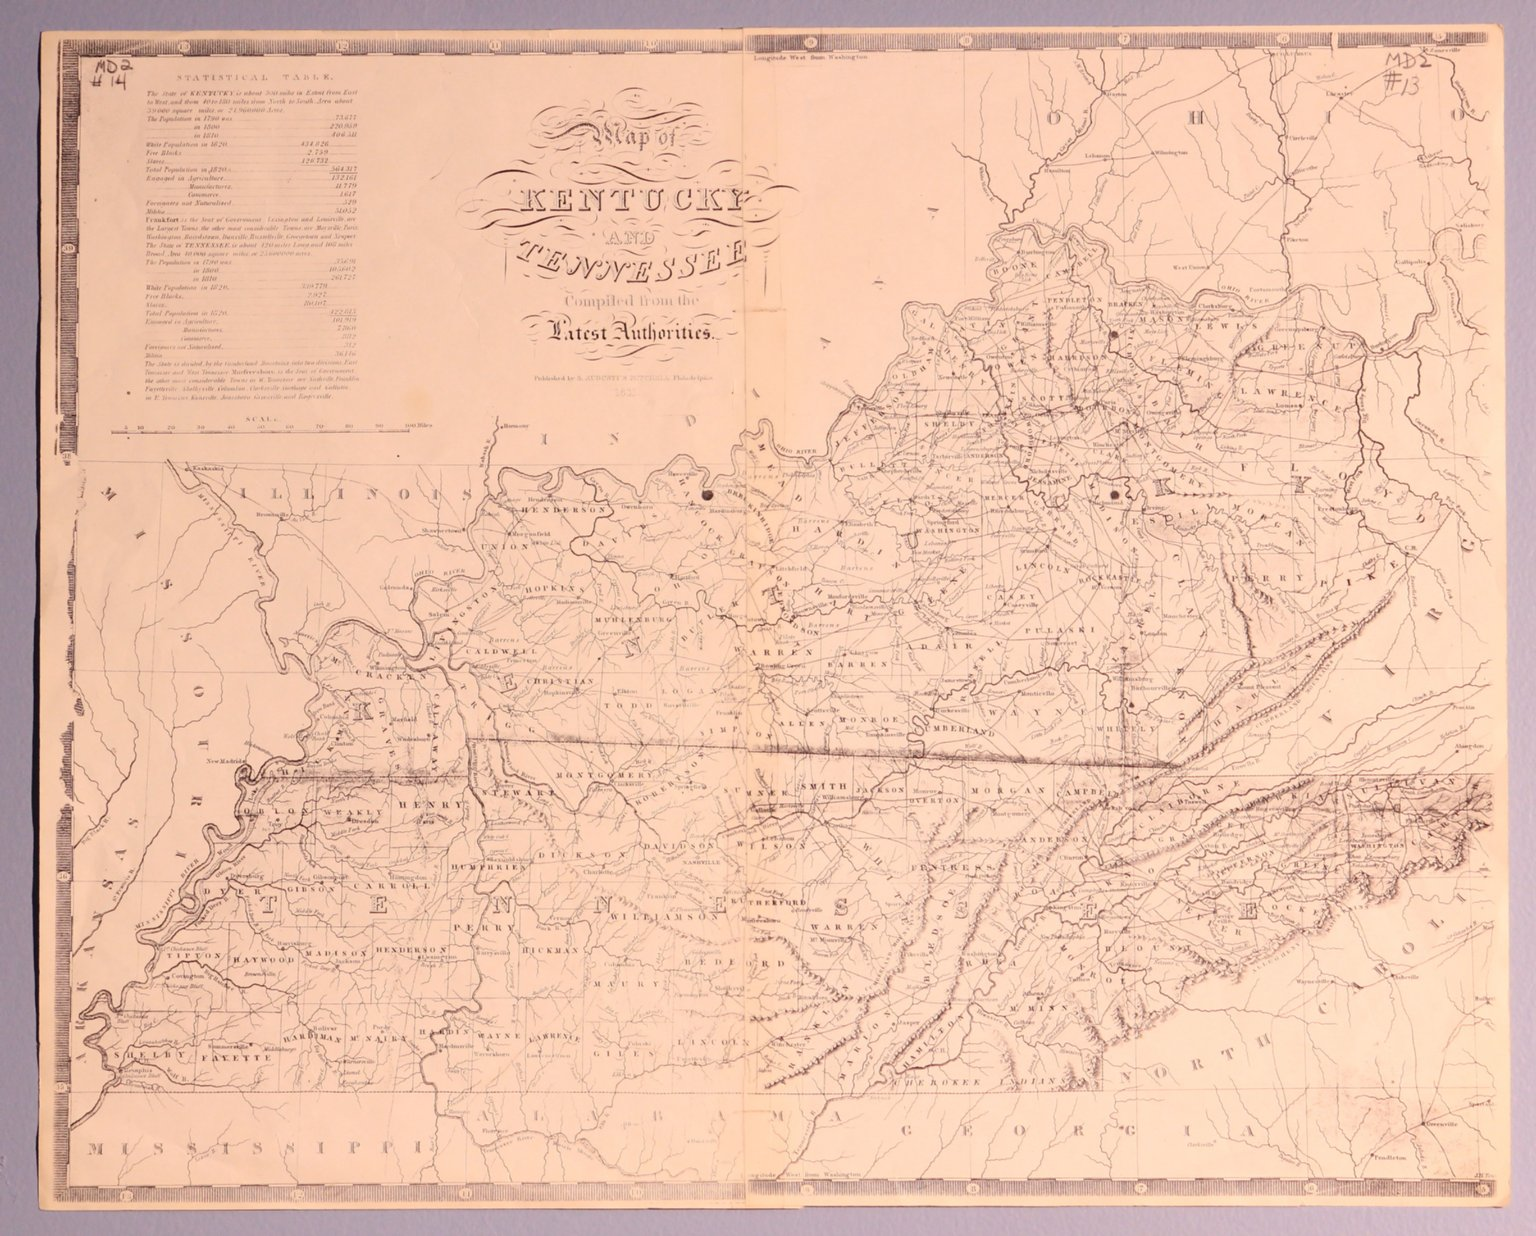 Map of Kentucky and Tennessee compiled from the Latest Authorities